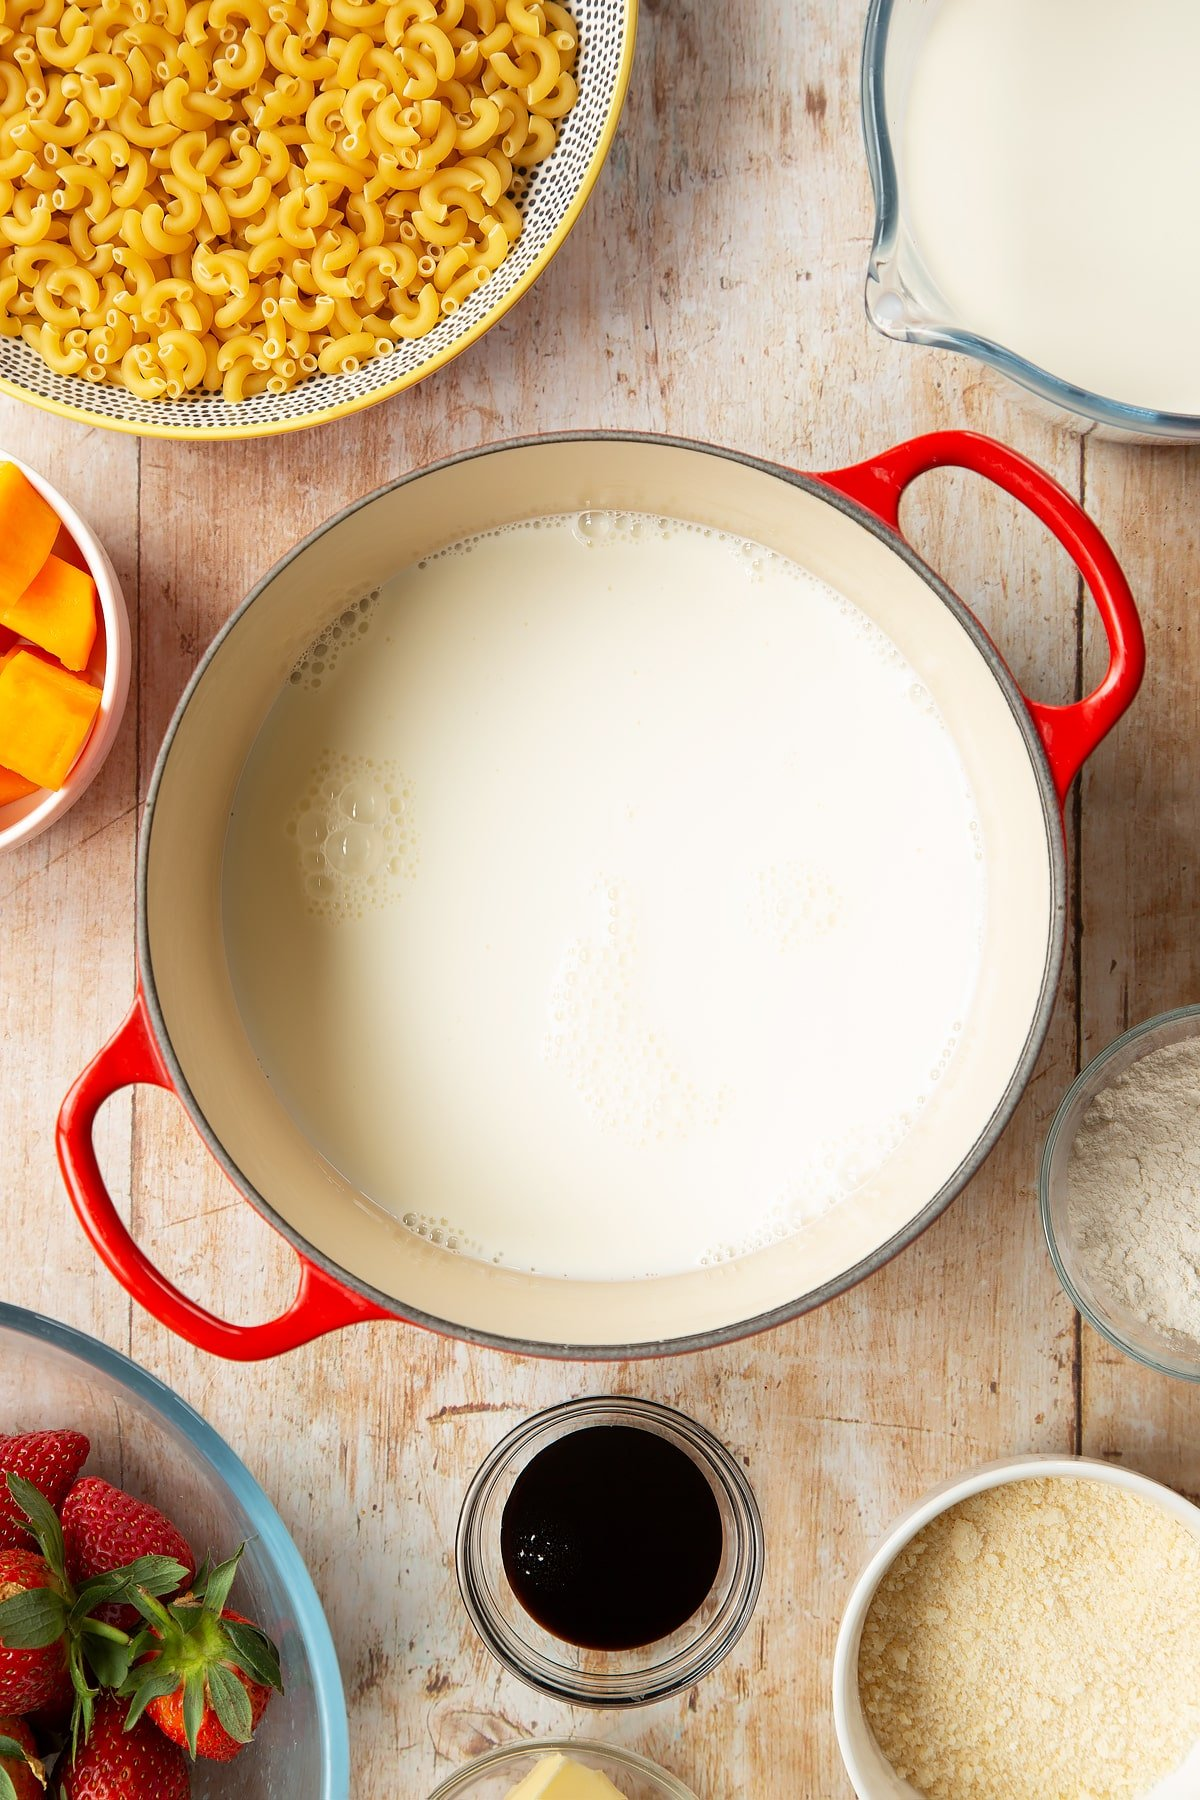 A saucepan containing milk. The pan is surrounded by ingredients for strawberry pasta.